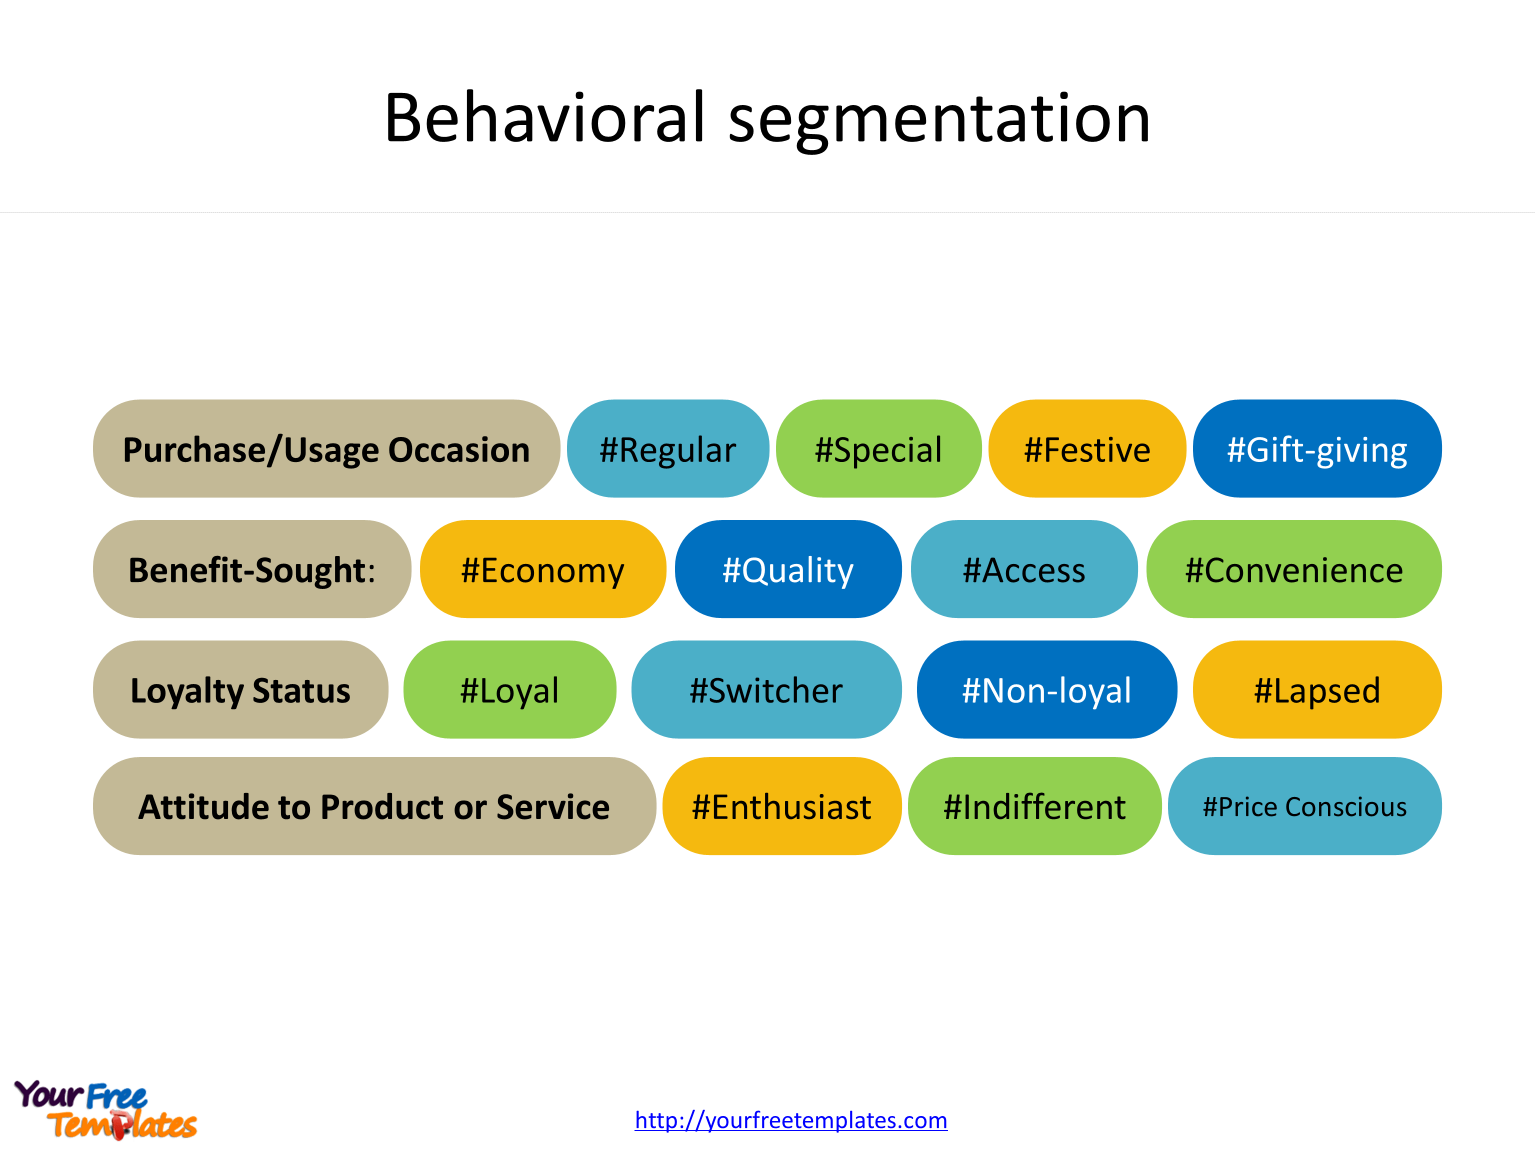 Consumer segmentation template of Behavioral segmentation